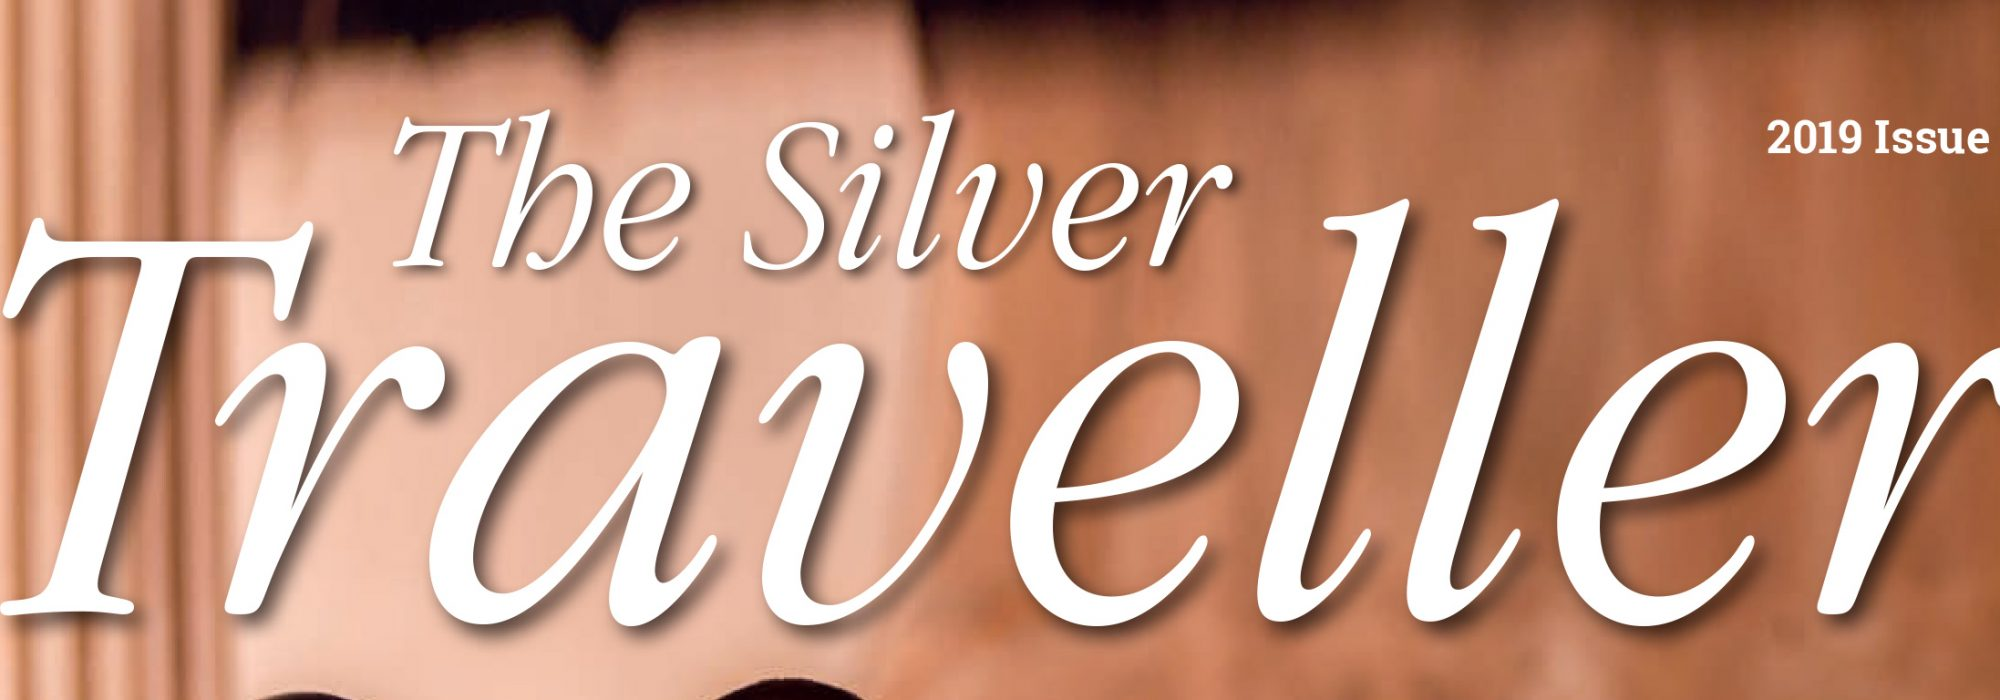 advantage-travel-partnership-silver-traveller-magazine-issue-1-20191